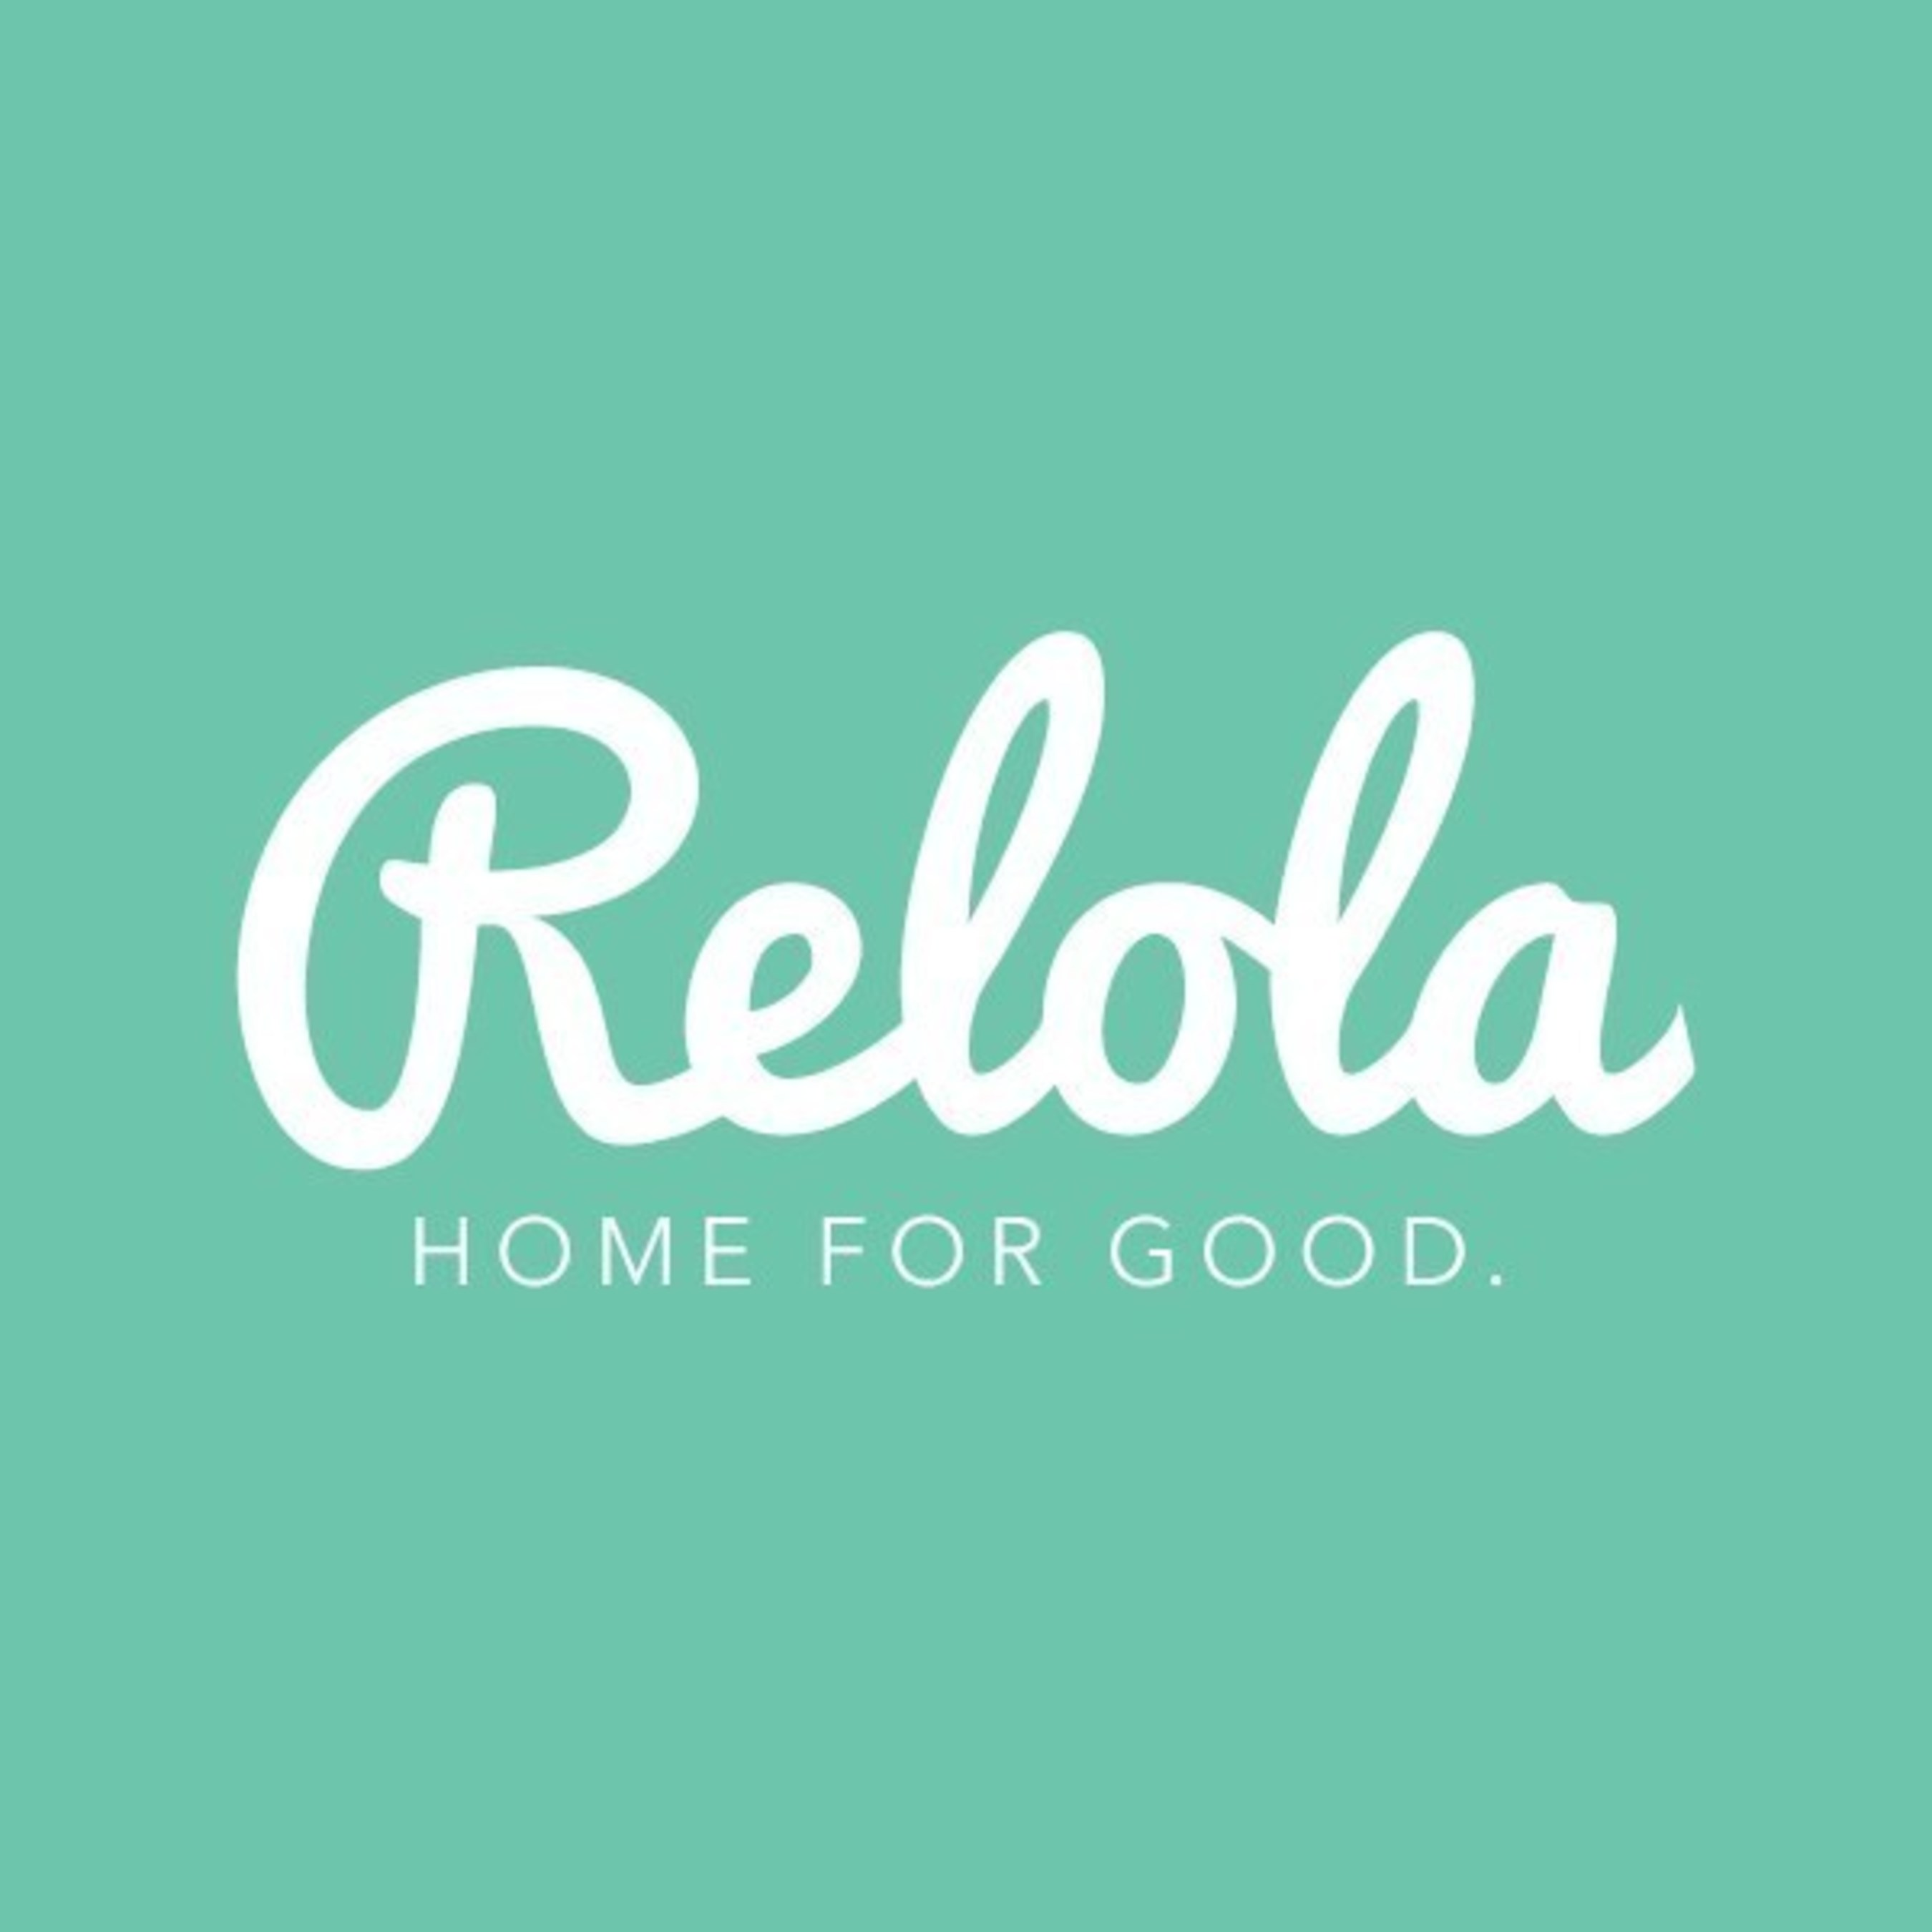 Relola To Launch Mobile App At NAR Realtors® Conference & Expo